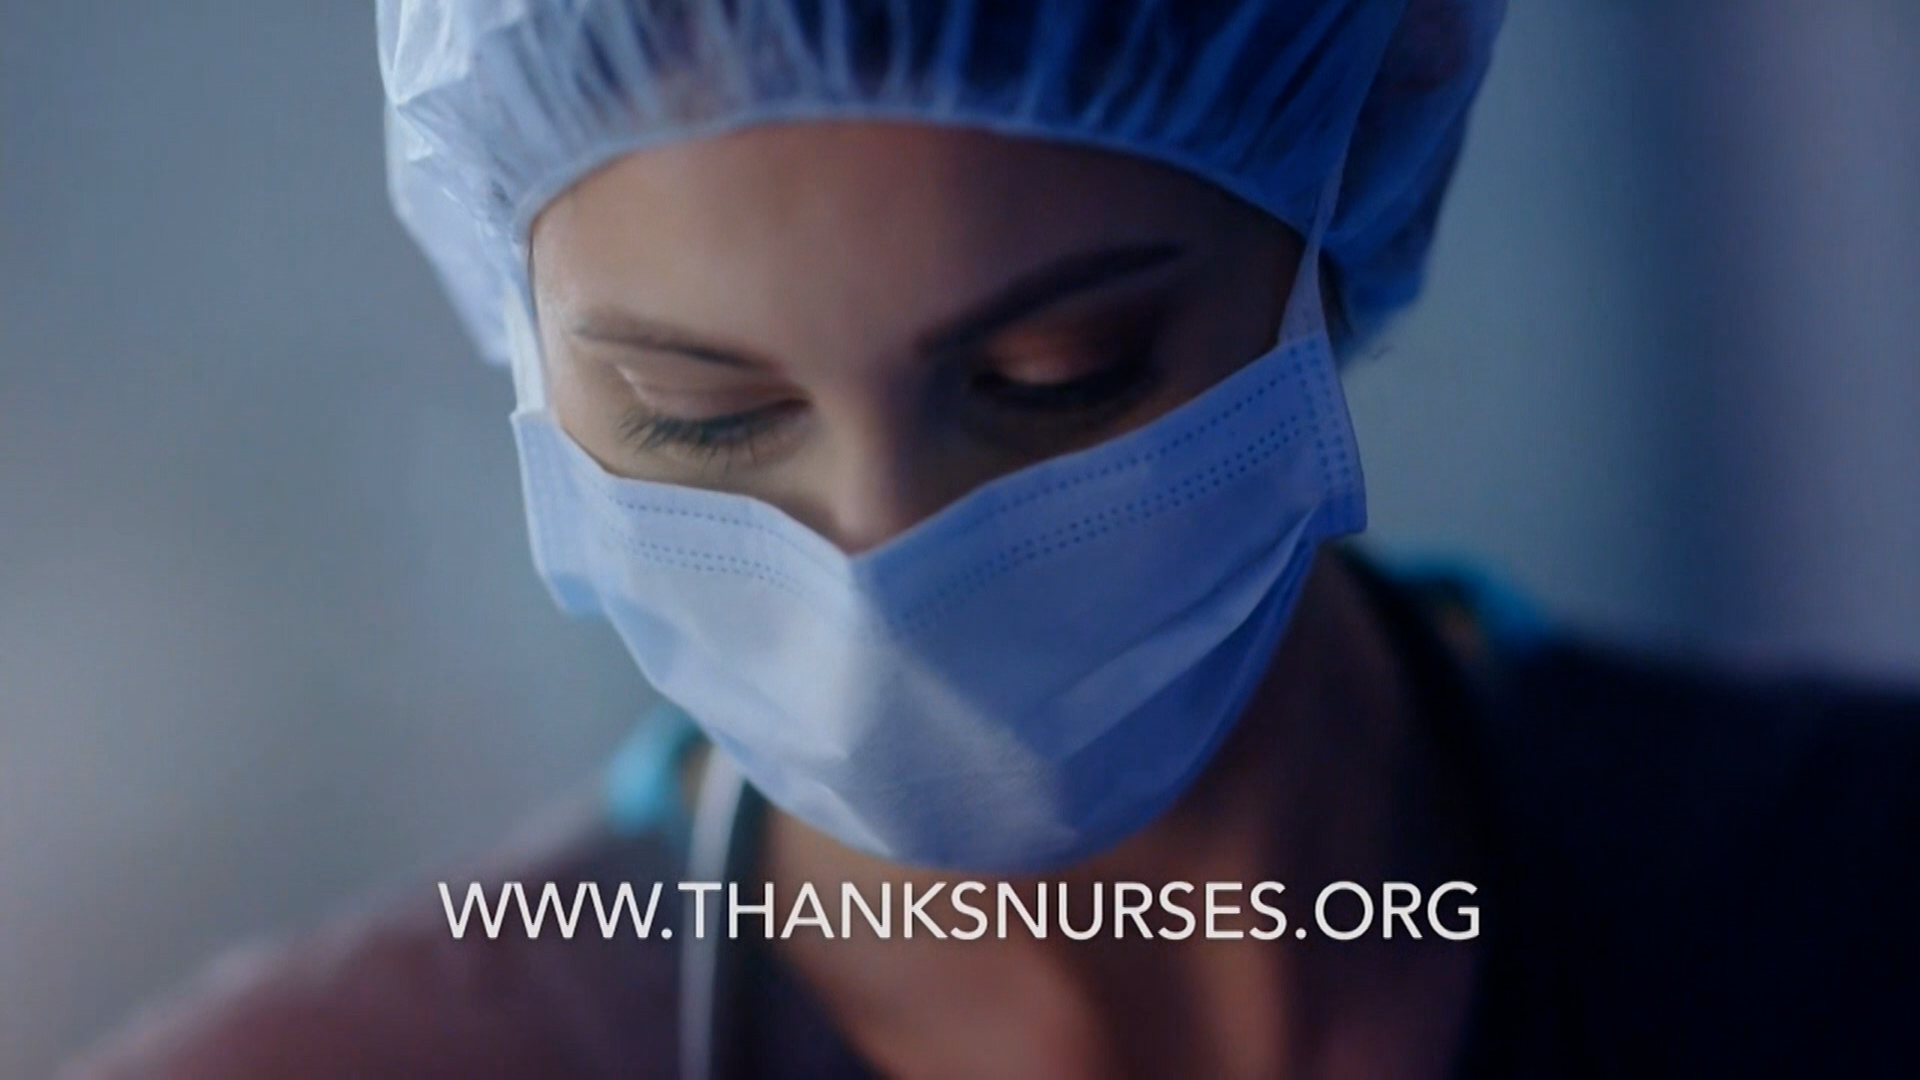 American_Nurses_Association---kw---Healthcare_category---ABC_-_March_8--2021---dtc---USA---English---TV_commercial---30_seconds.mp4